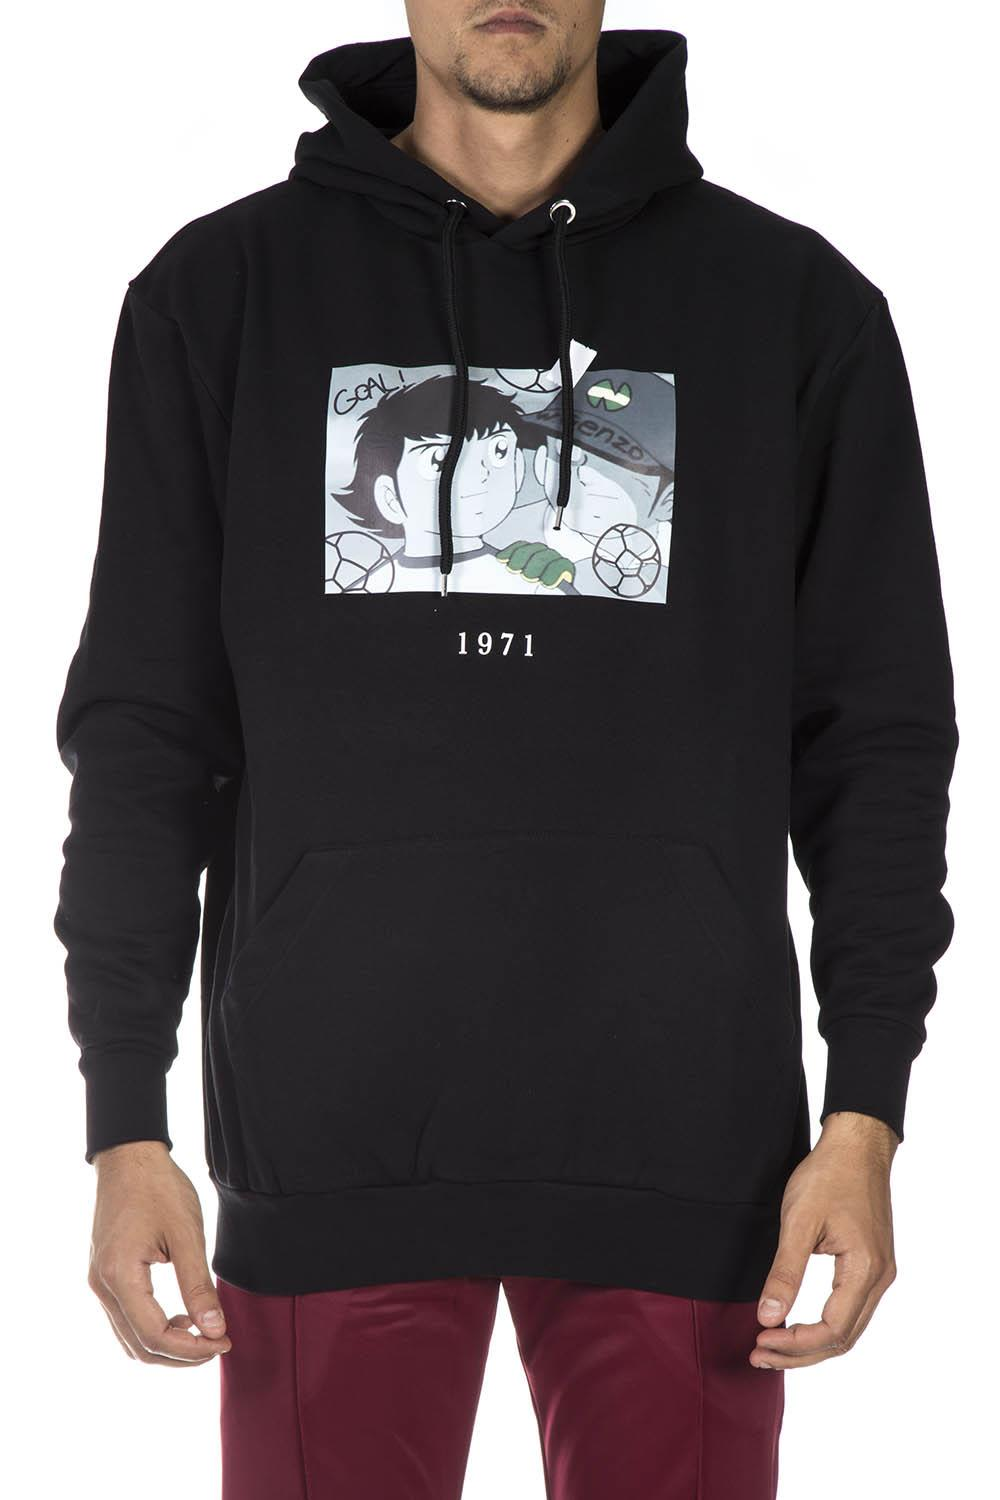 THROWBACK Black Cotton Sweatshirt